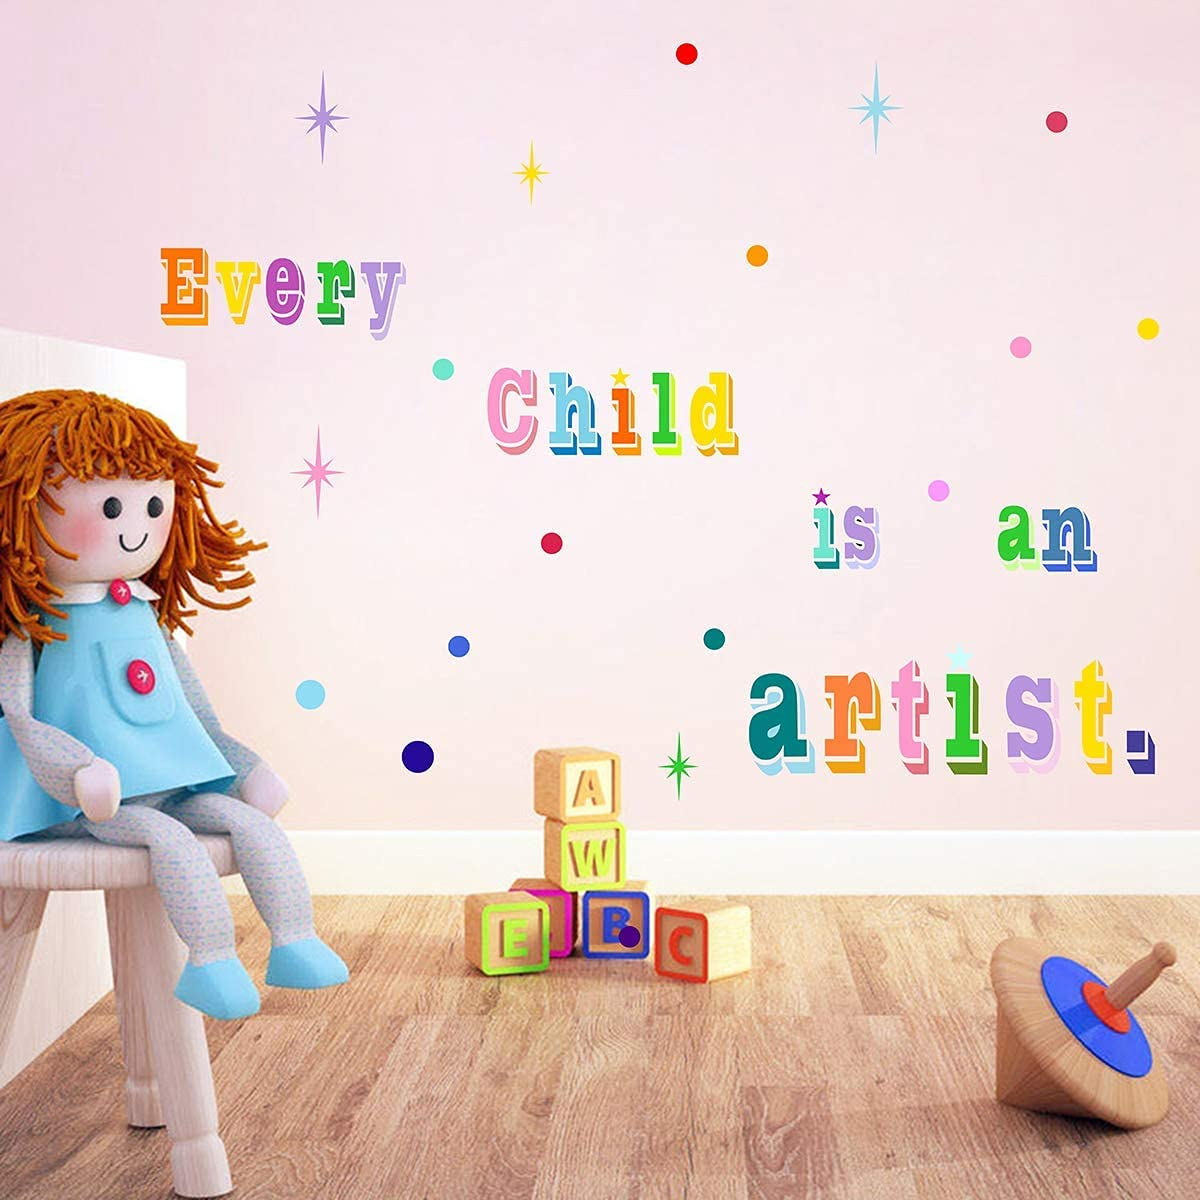 Every Child is an Artist Wall Sticker,Inspirational Lettering Quotes Wall Decals Nursery Kids Room Playroom Classroom Decor Rainbow Color